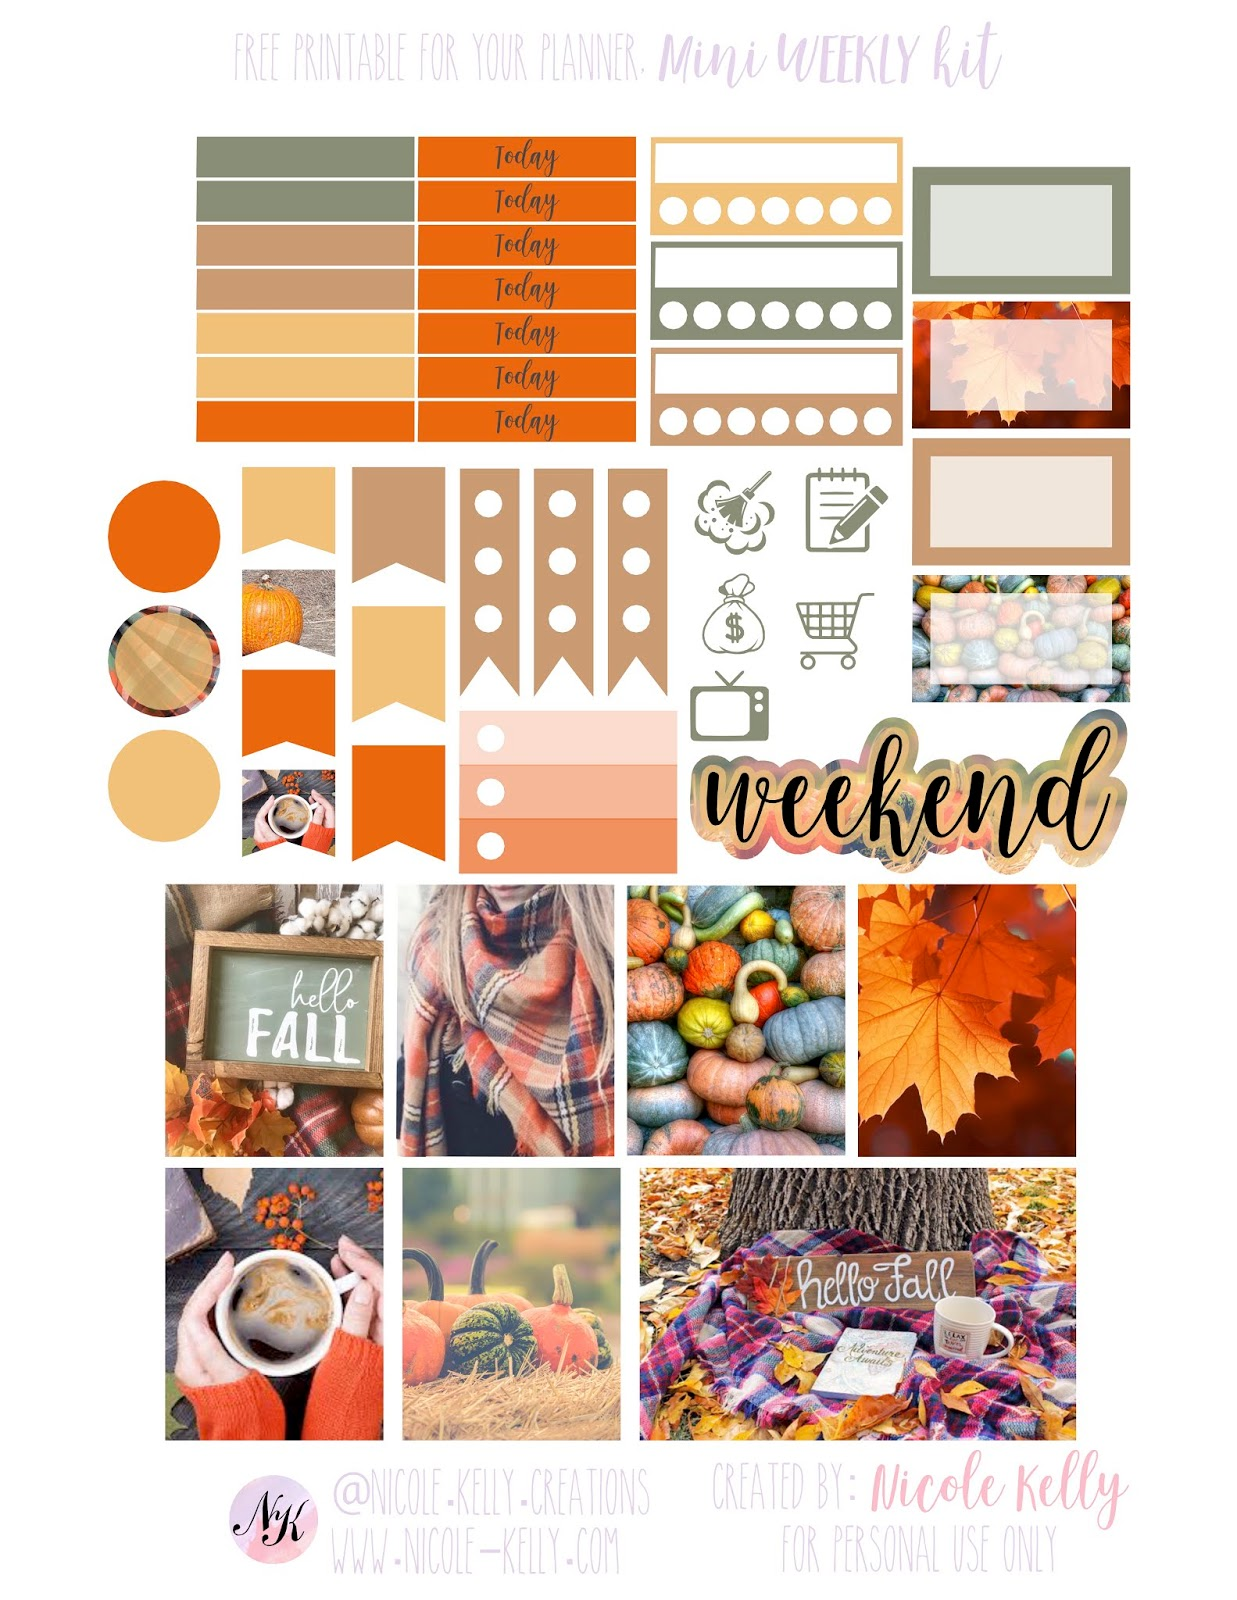 nicole kelly: free printable planner stickers - hello fall